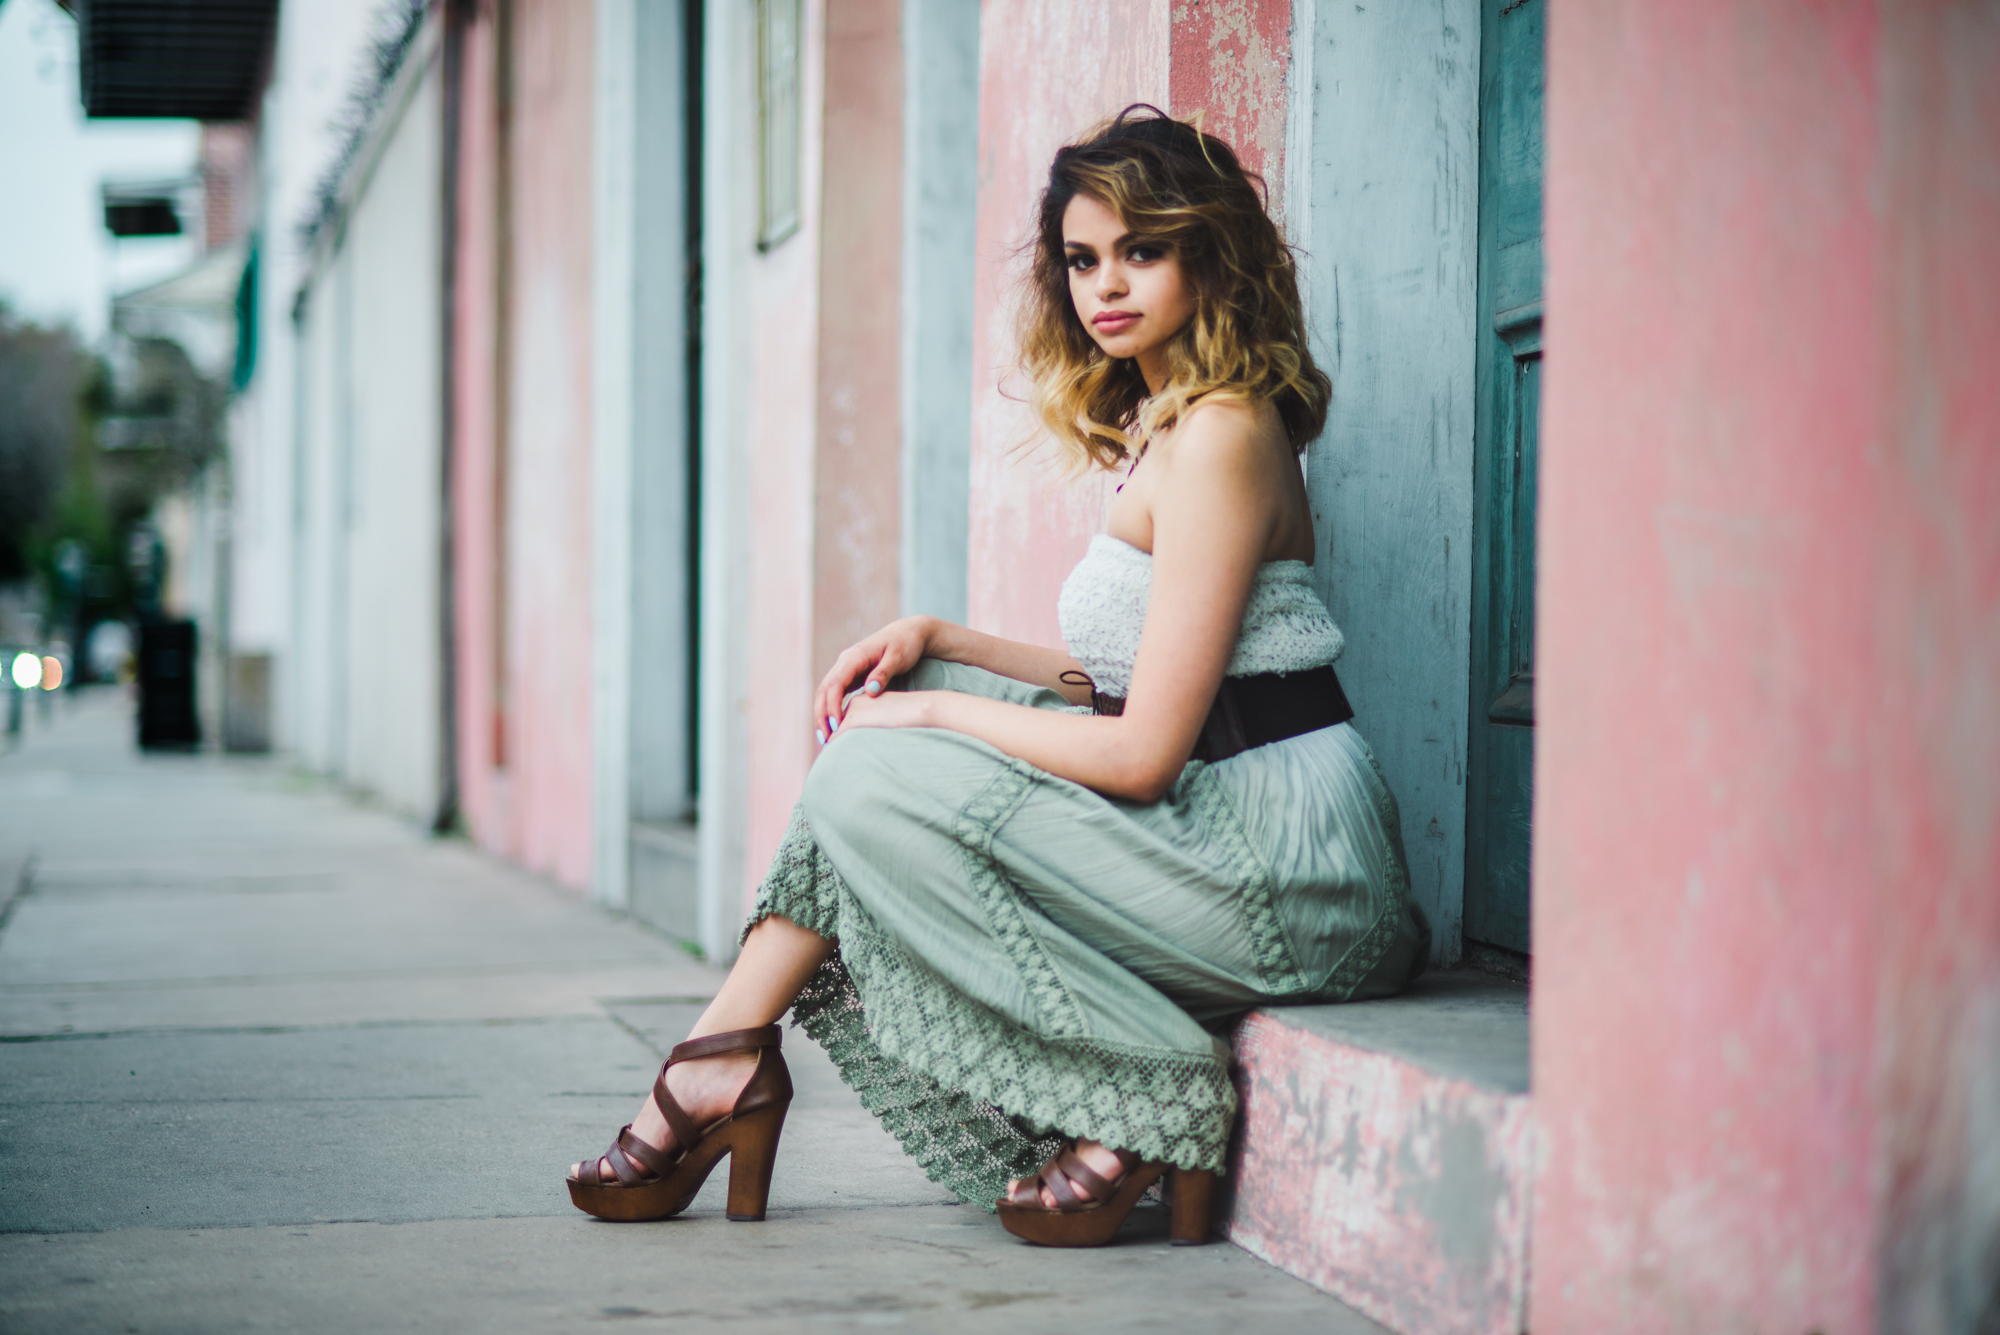 New Orleans Fashion Photoshoot in the French Quarter Dauphine Street